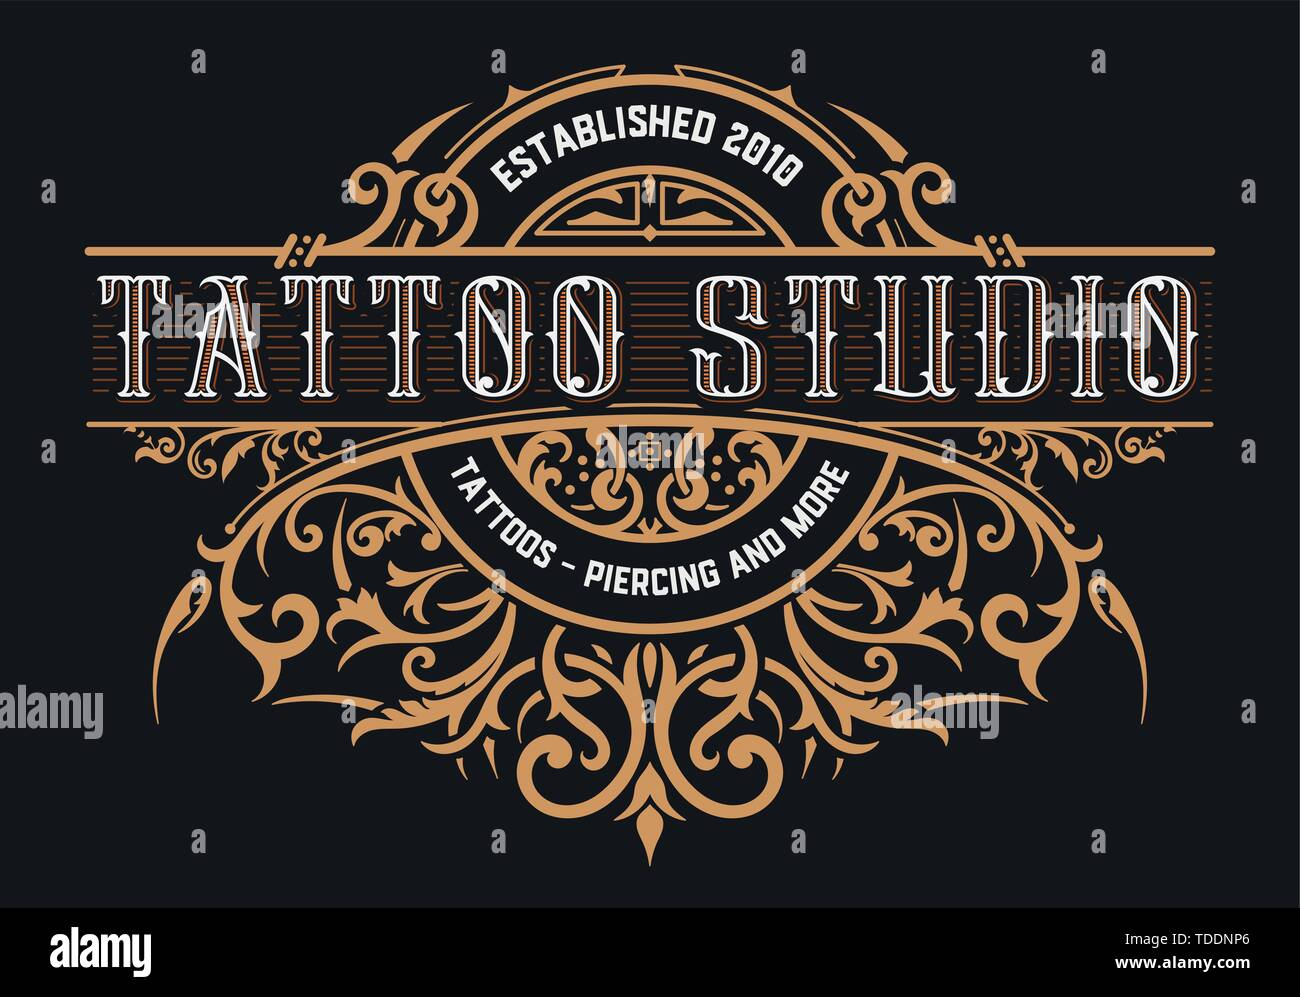 Tattoo Logo Template Old Lettering On Dark Background With Floral Ornaments Stock Vector Image Art Alamy Here you'll find hundreds of high quality tattoo logo templates to download. https www alamy com tattoo logo template old lettering on dark background with floral ornaments image249238142 html